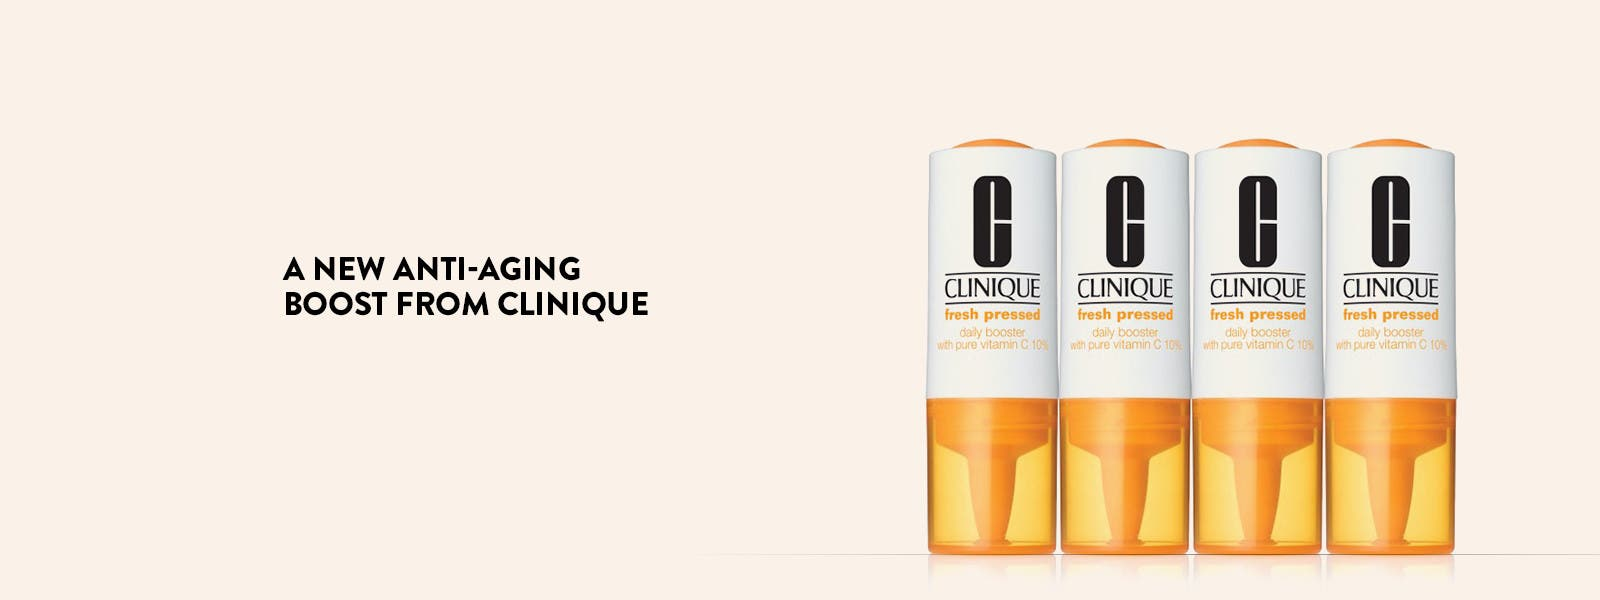 A new anti-aging boost from Clinique.